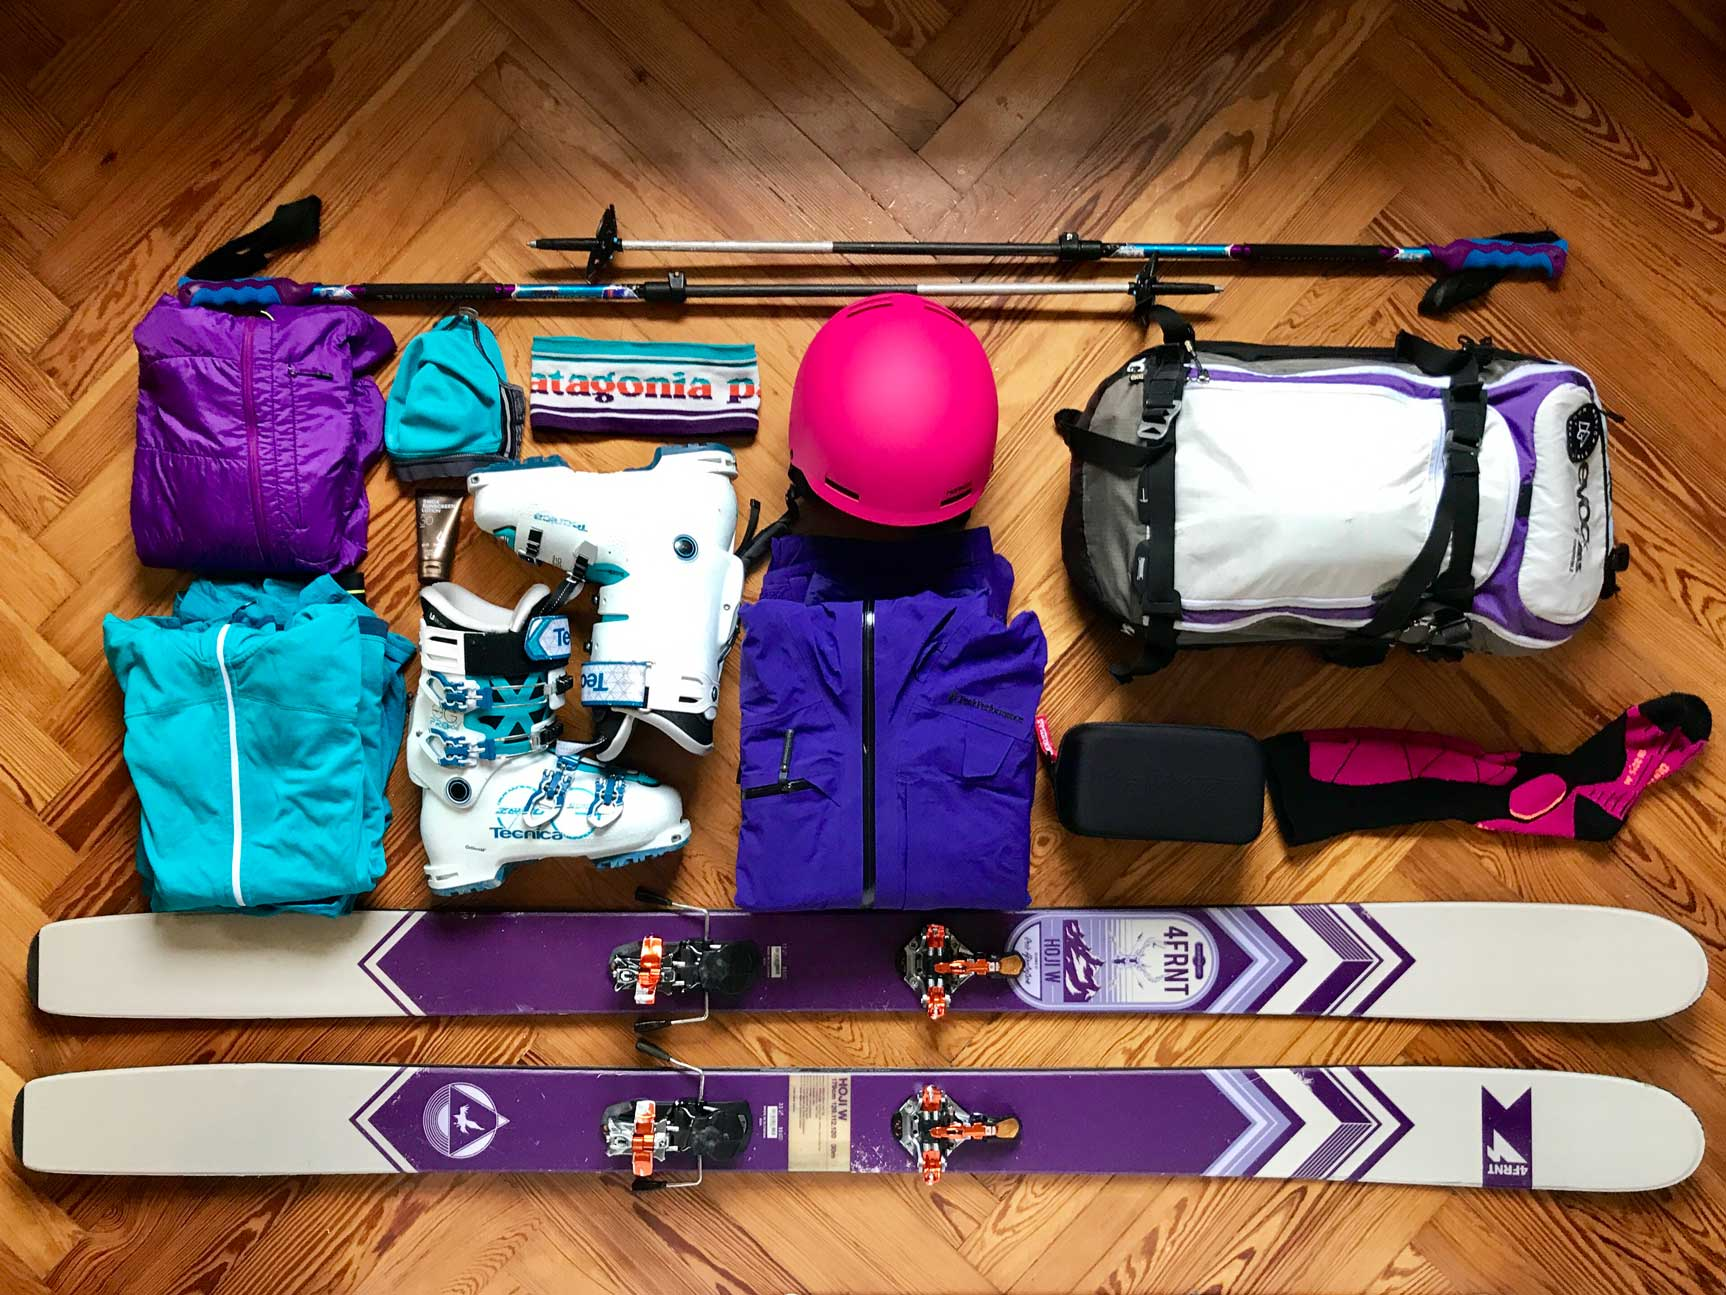 packliste-skifahren-munich-mountain-girls-katharina-kestler-legebild